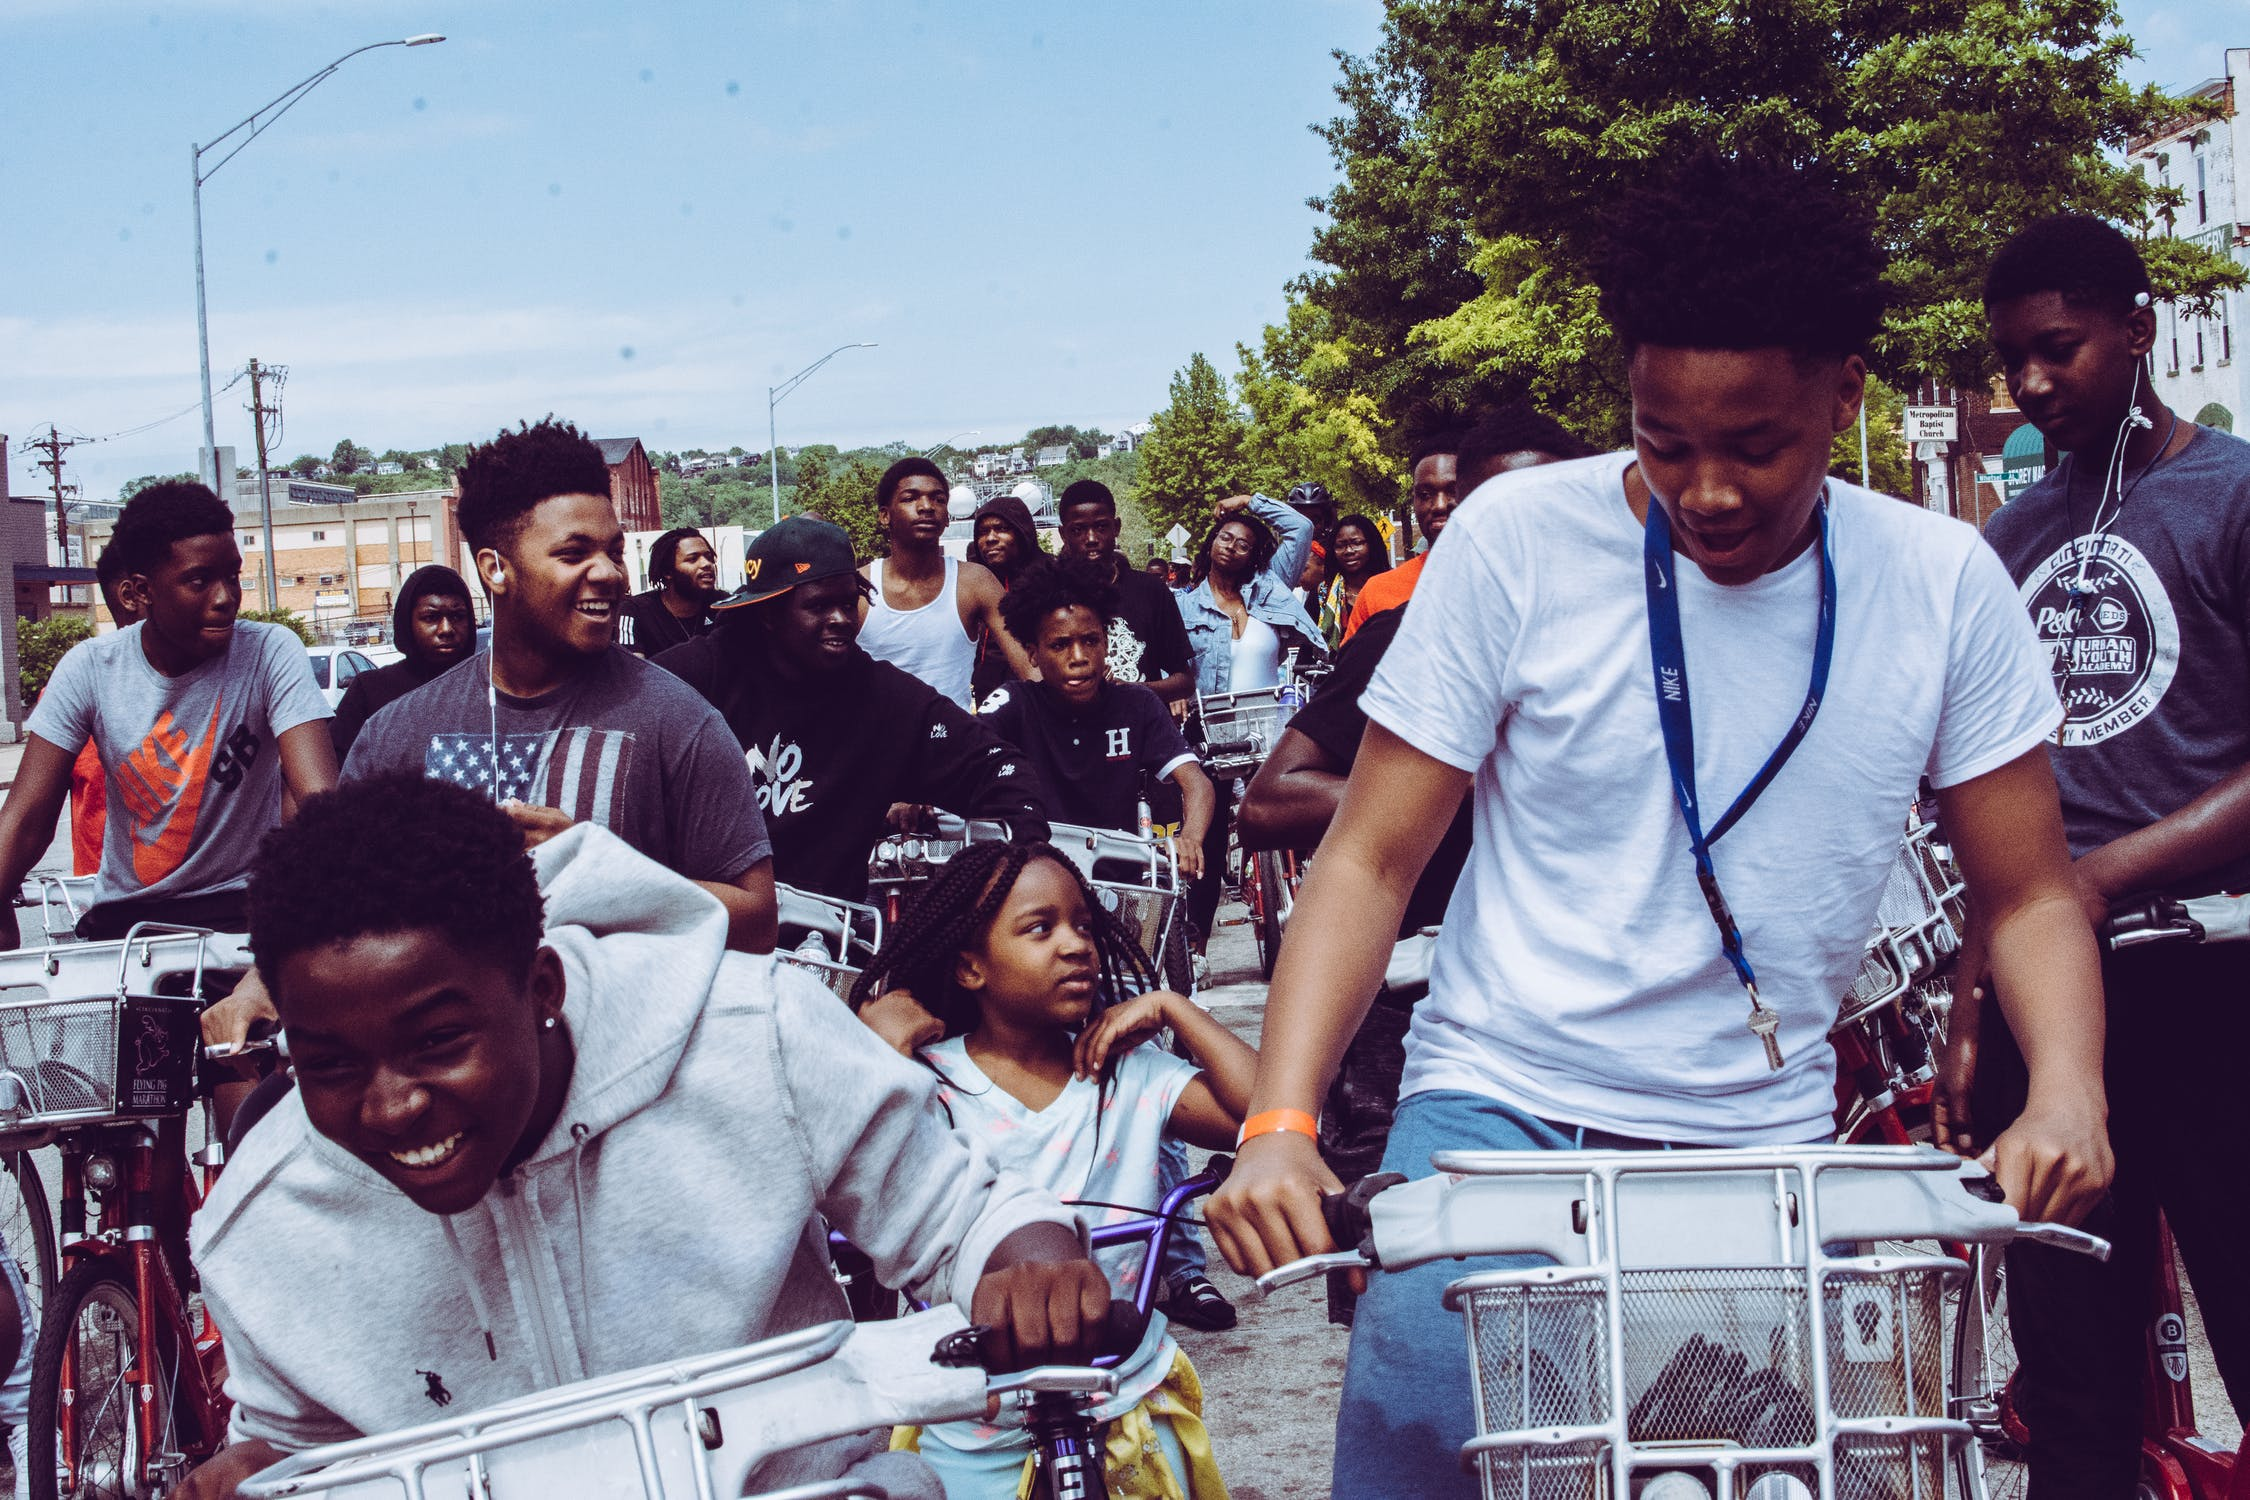 Culture of Sustainability / Threshold to create cultural change - Crowd on bicycles. Photo Ahsheal Media from Pexels